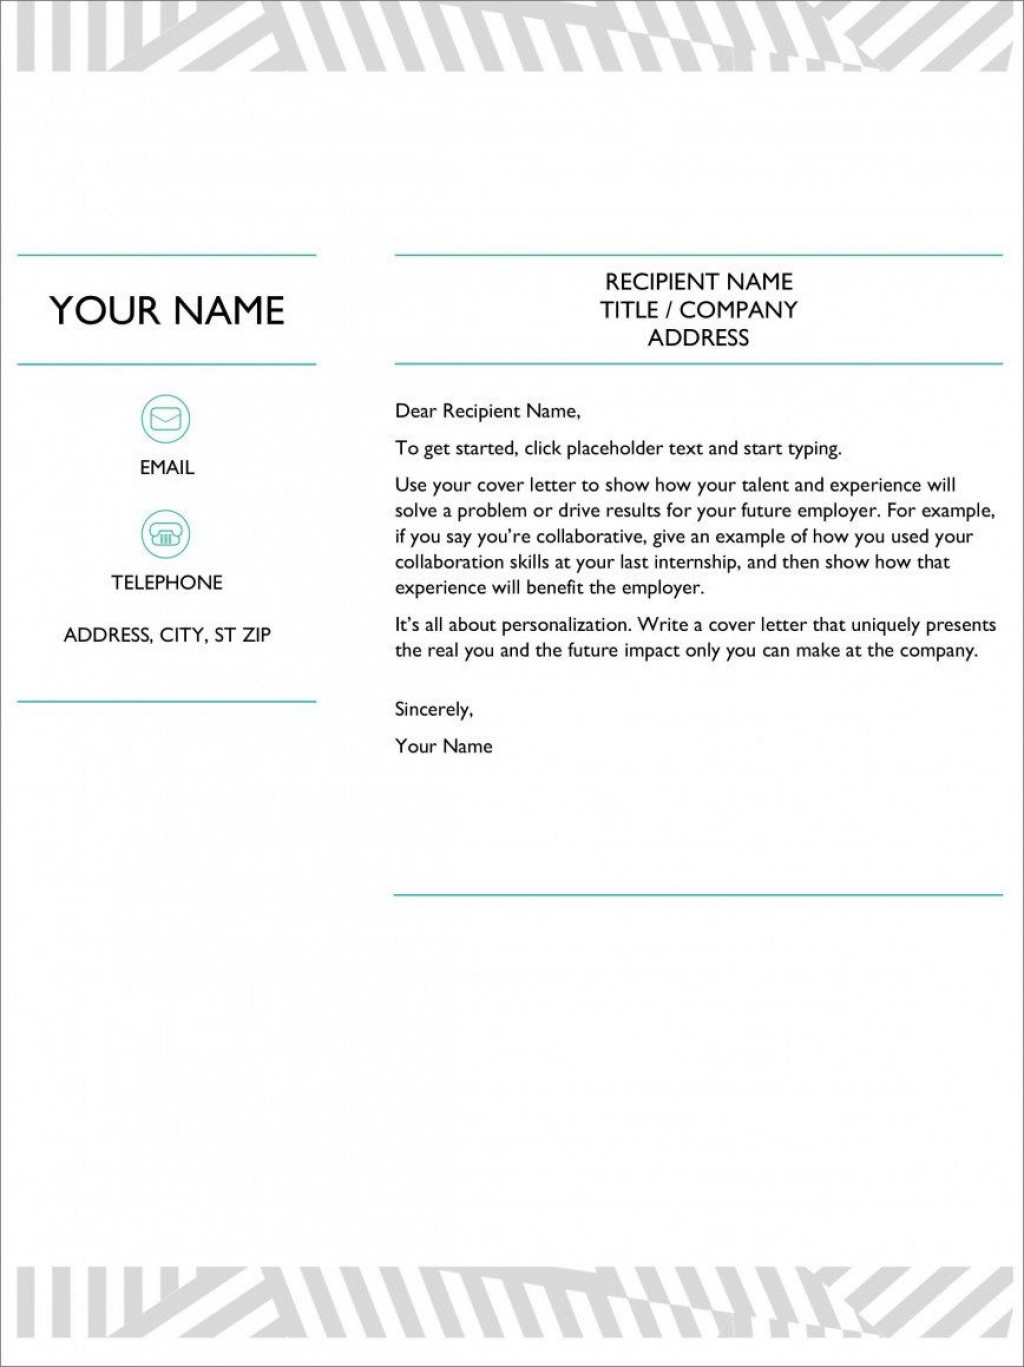 009 Astounding Resume Cover Letter Template Microsoft Word Example Large